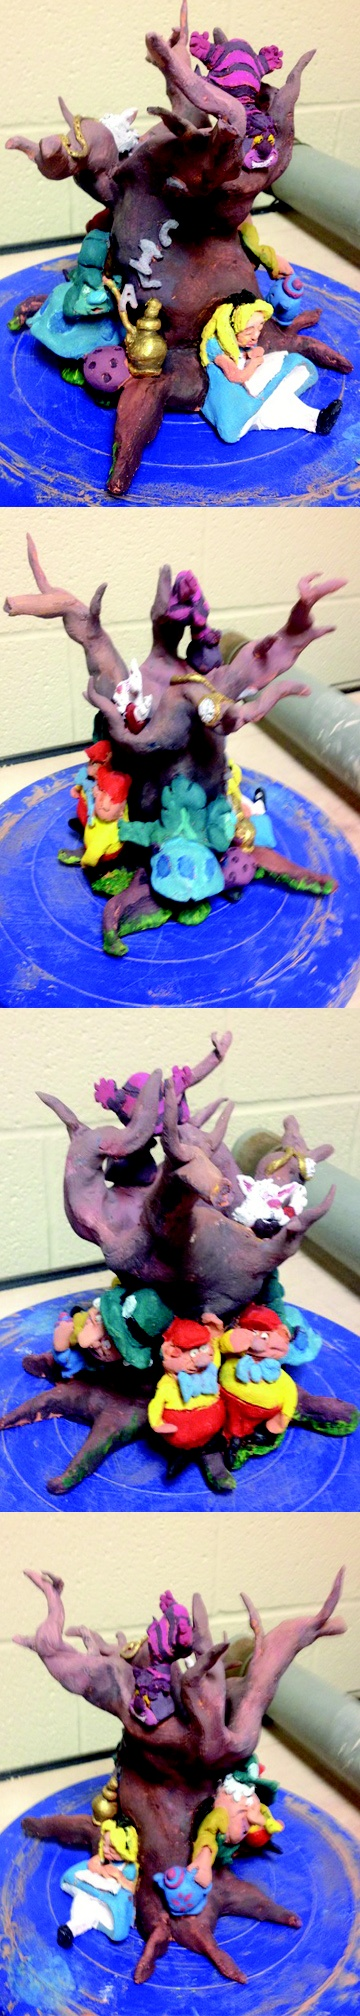 Students created a themed vessel. This was themed for Alice in wonderland which our students were reading in english. Made a great clay project for hig school students!